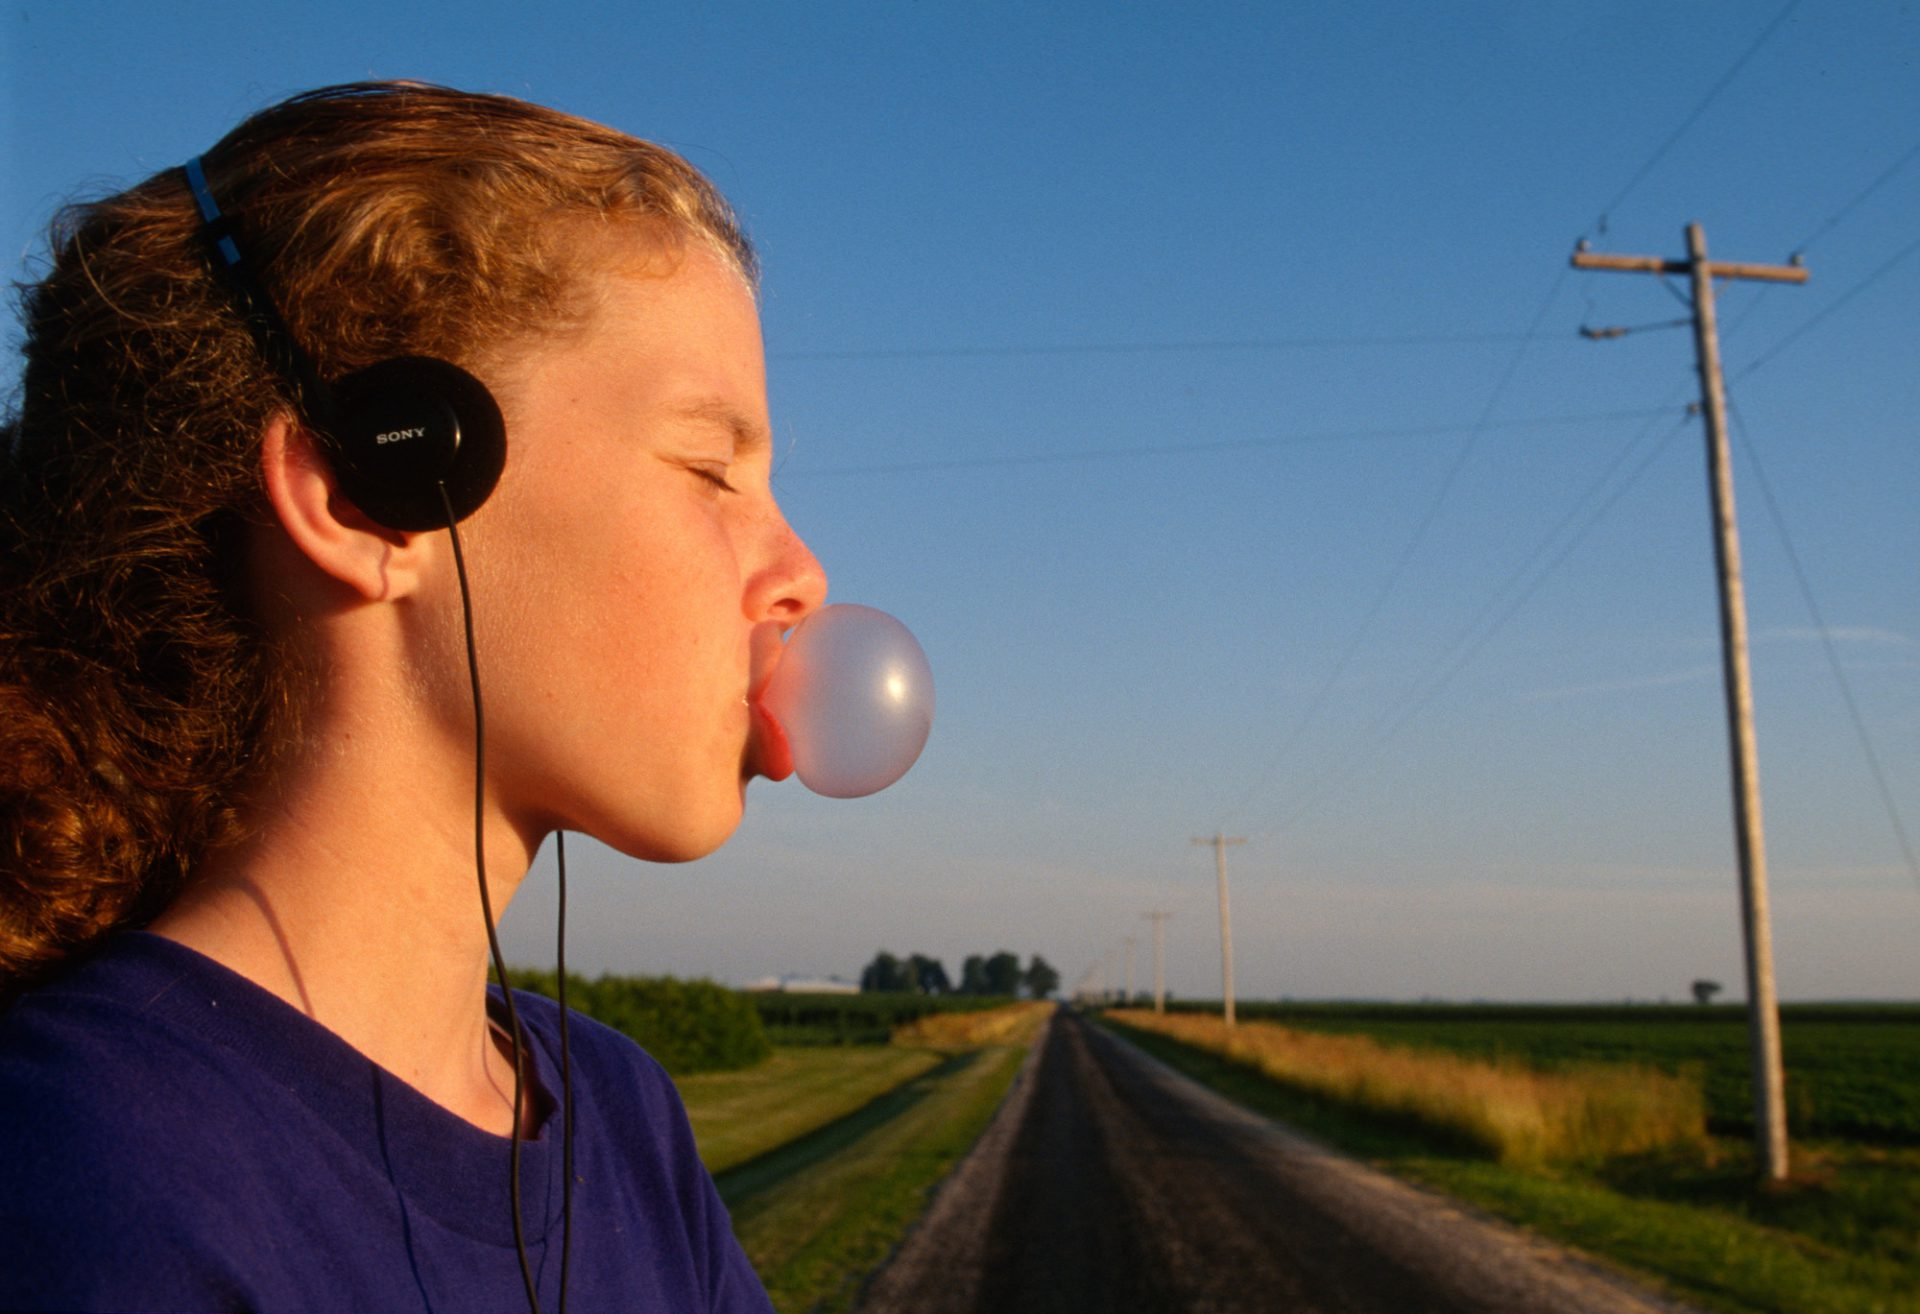 Photo: A girl chews bubble gum and listens to music in rural Flatville, IL.